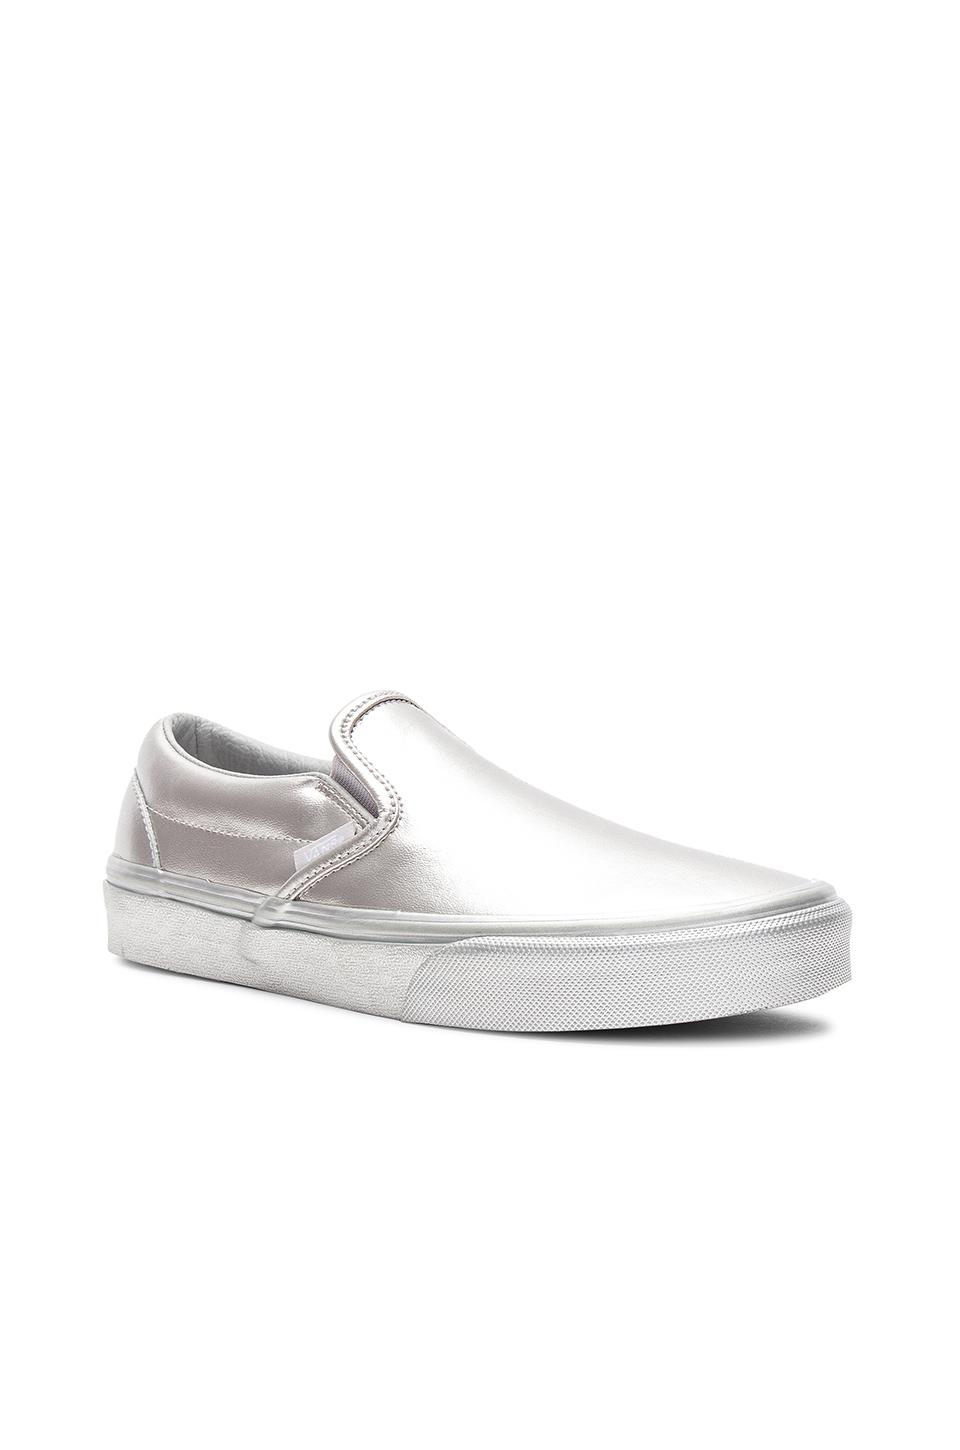 3a97dbbe4dd80 Vans Classic Slip-on Women's Shoes (trainers) In Silver in Metallic ...